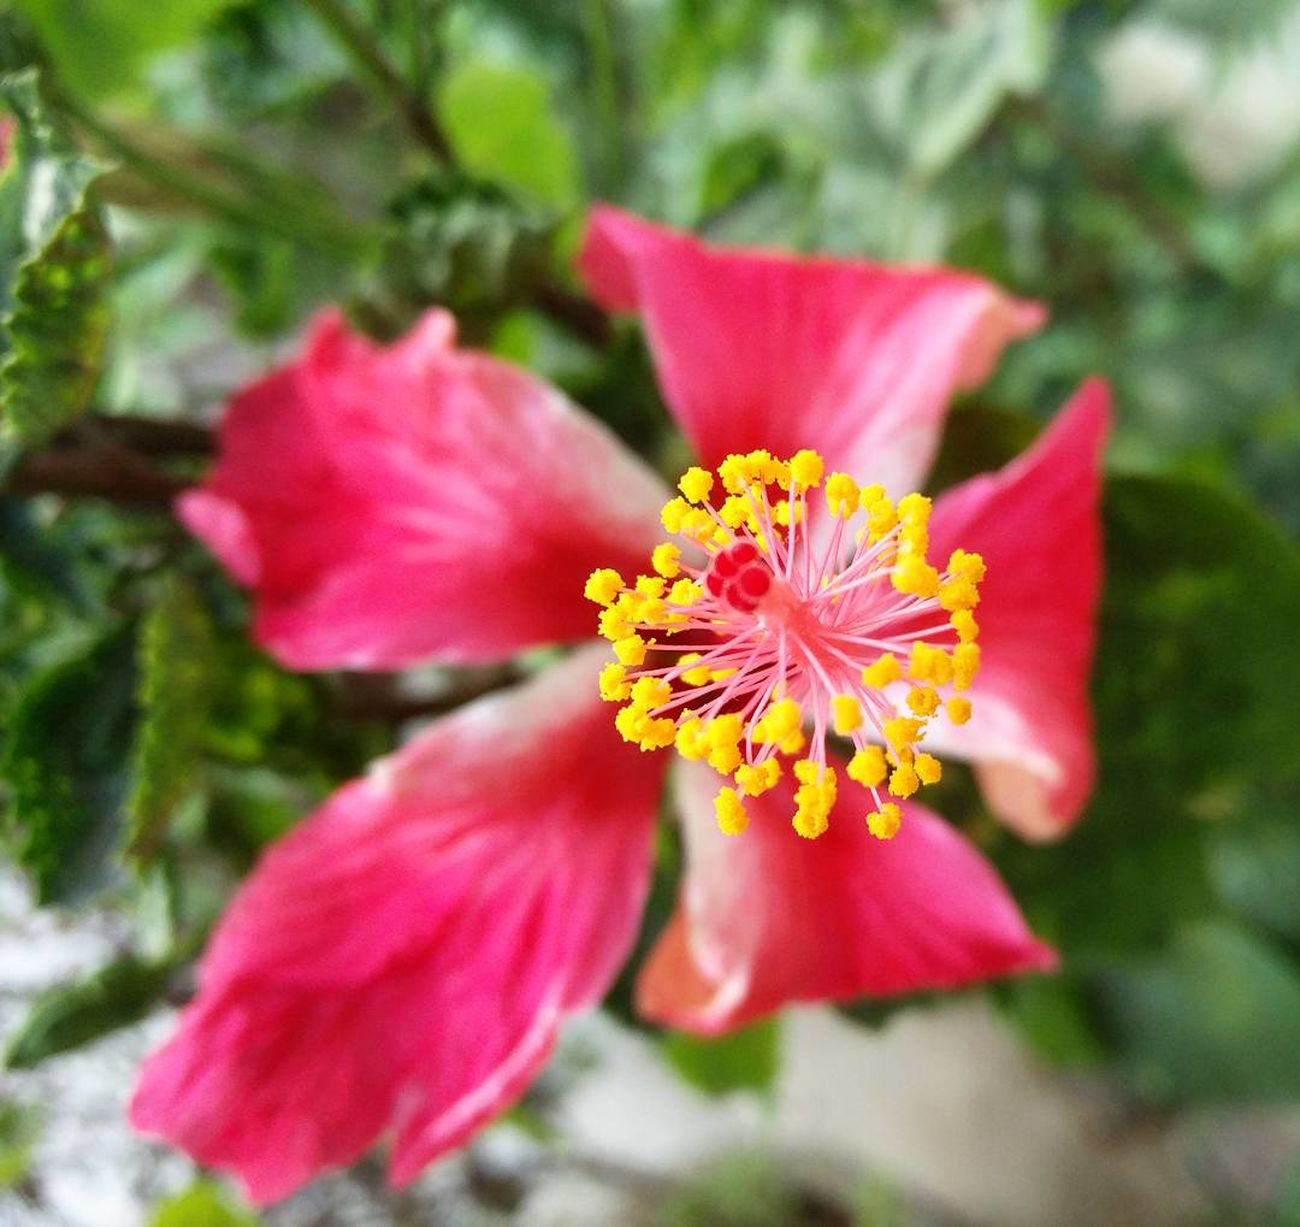 A red and white Hibiscus flower. Flower Petal Flower Head Yellow Fragility Nature Pollen Beauty In Nature Outdoors Day Close-up Freshness Beautiful Details Blurred Background Oneplus2 Colorsofnature Green Growth Hibiscus Hibiscus 🌺 Red Flower